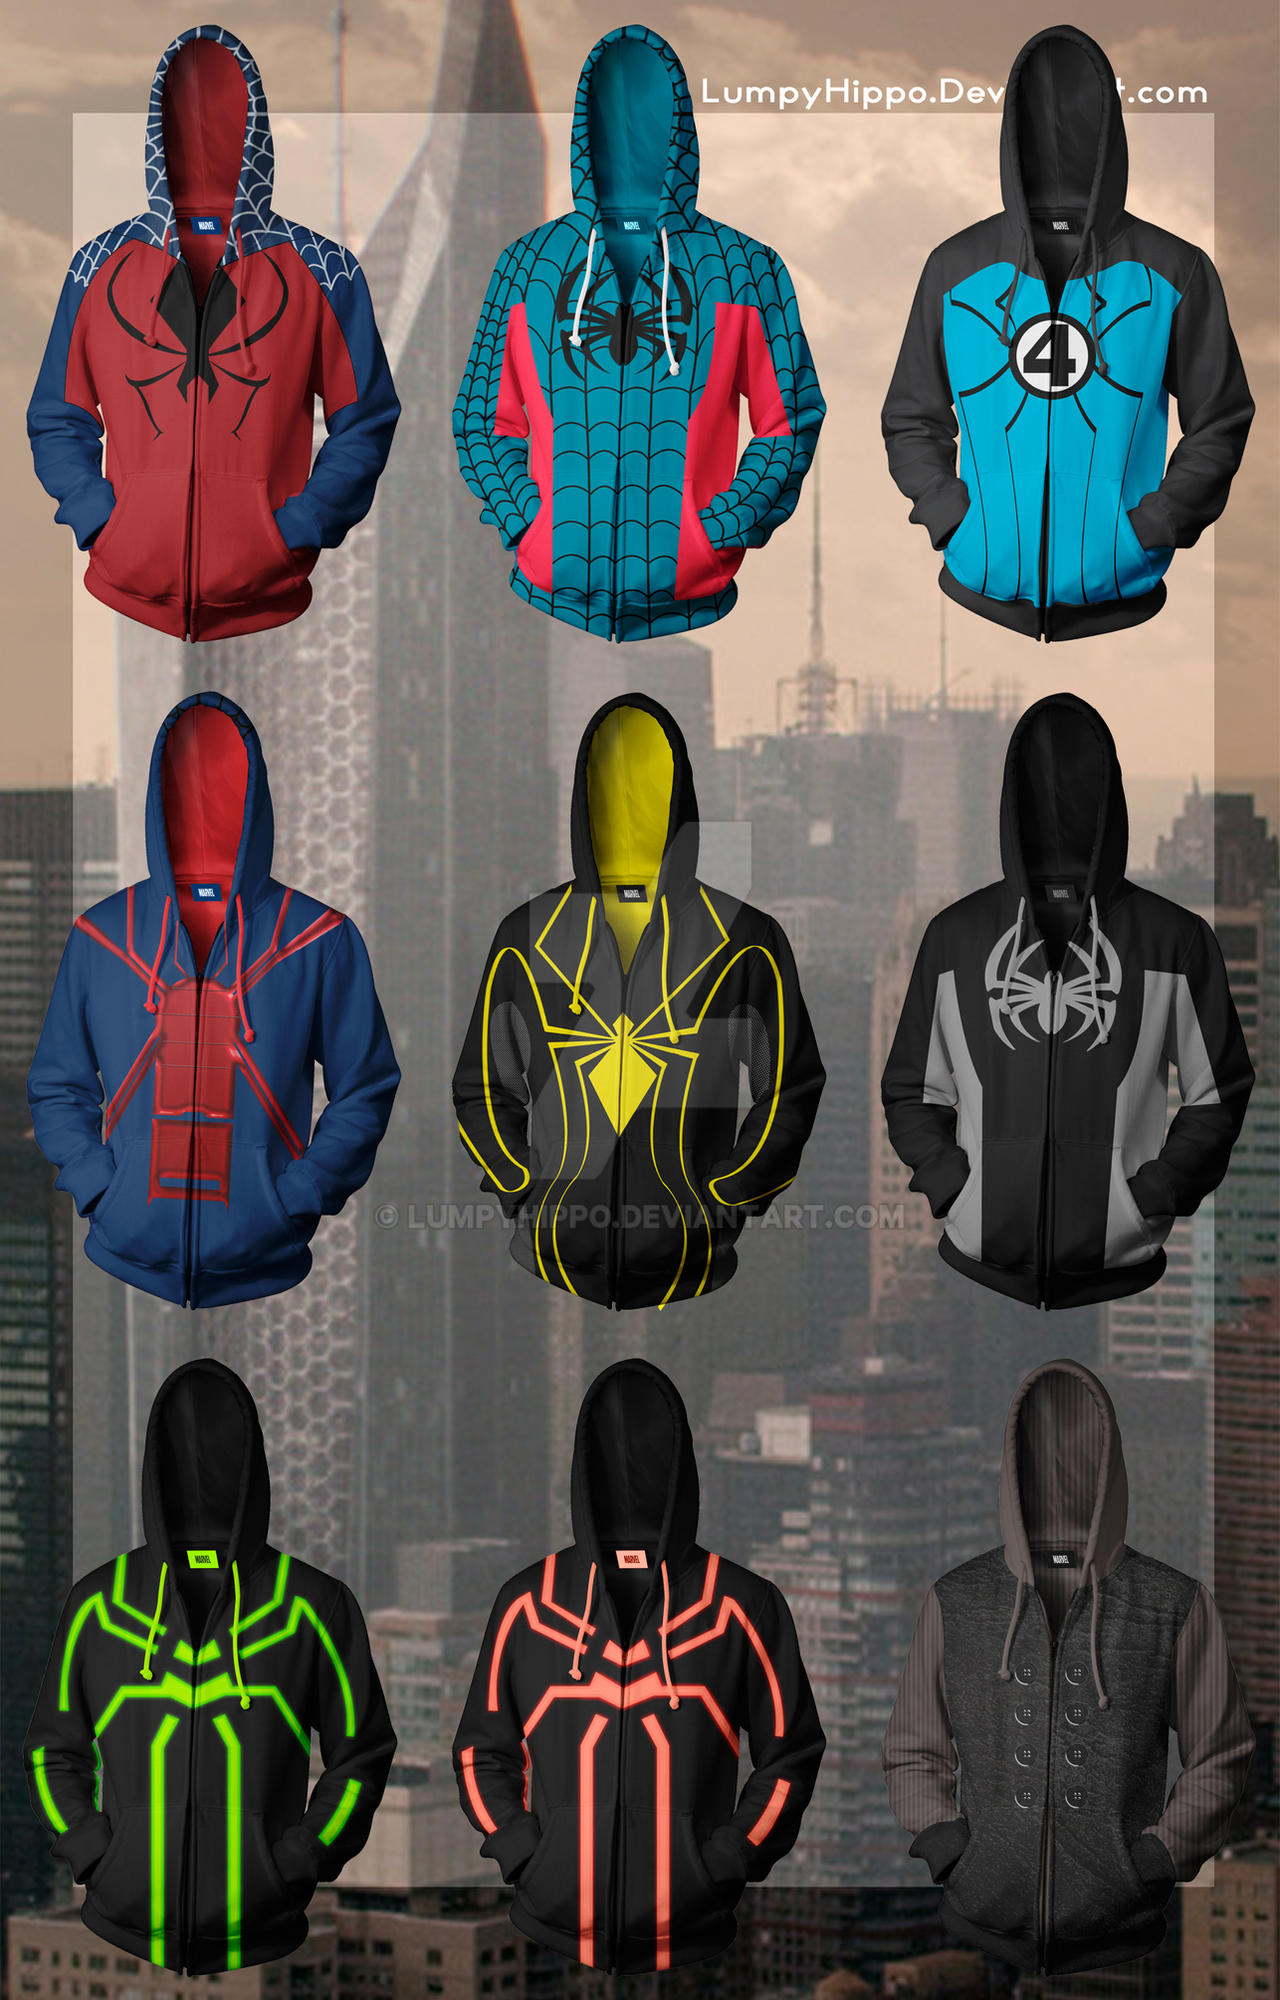 Spider-Man Hoodies 2 by lumpyhippo